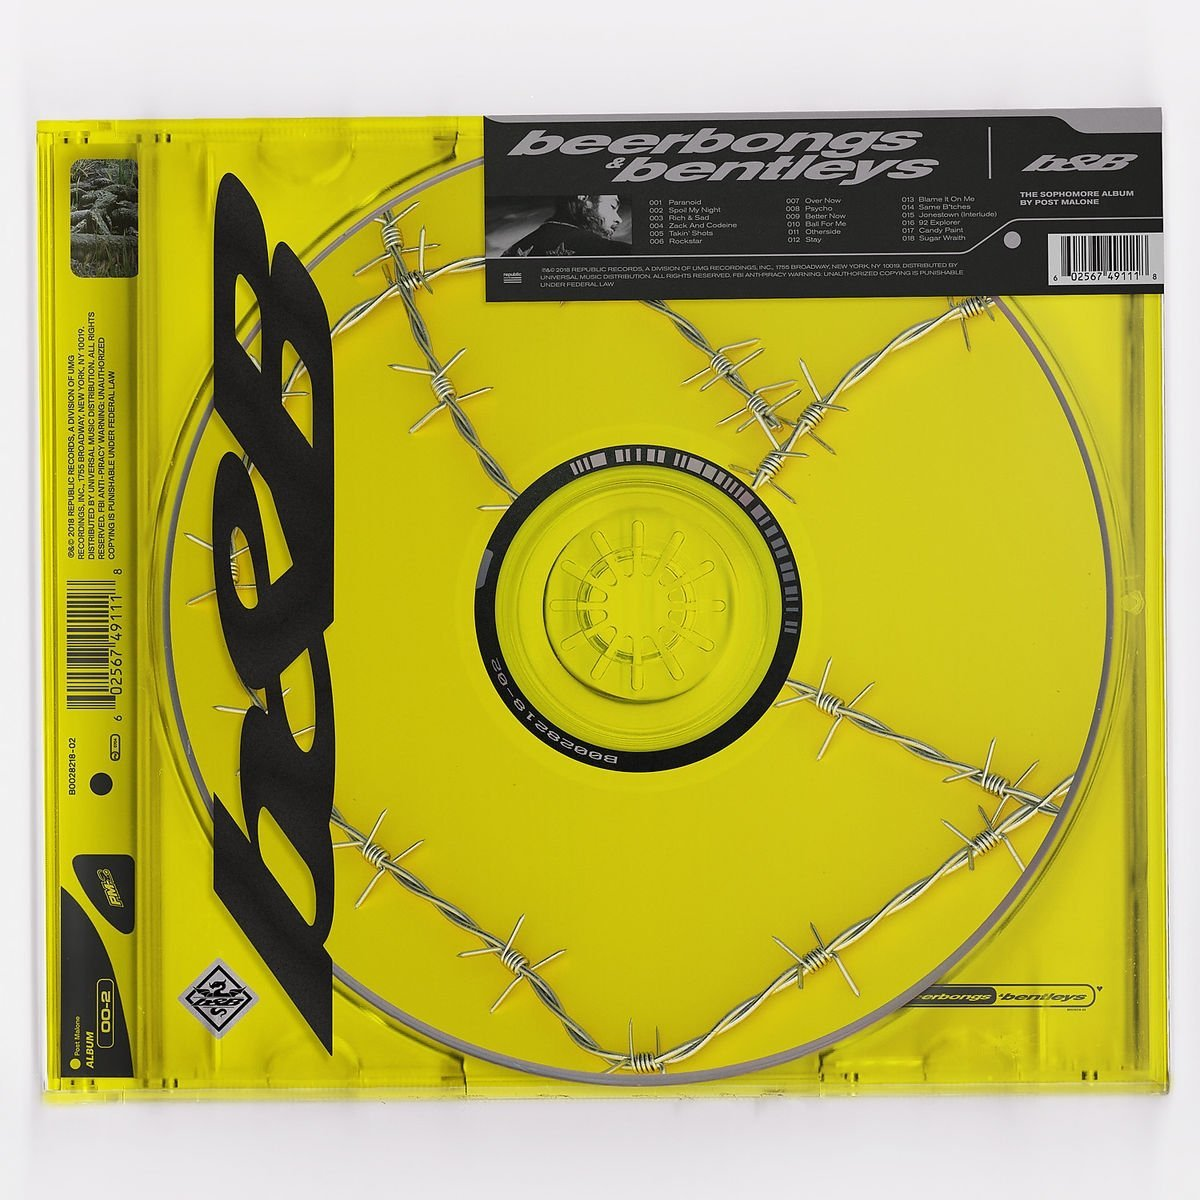 Post Malone - Beerbongs & Bentleys (CD)